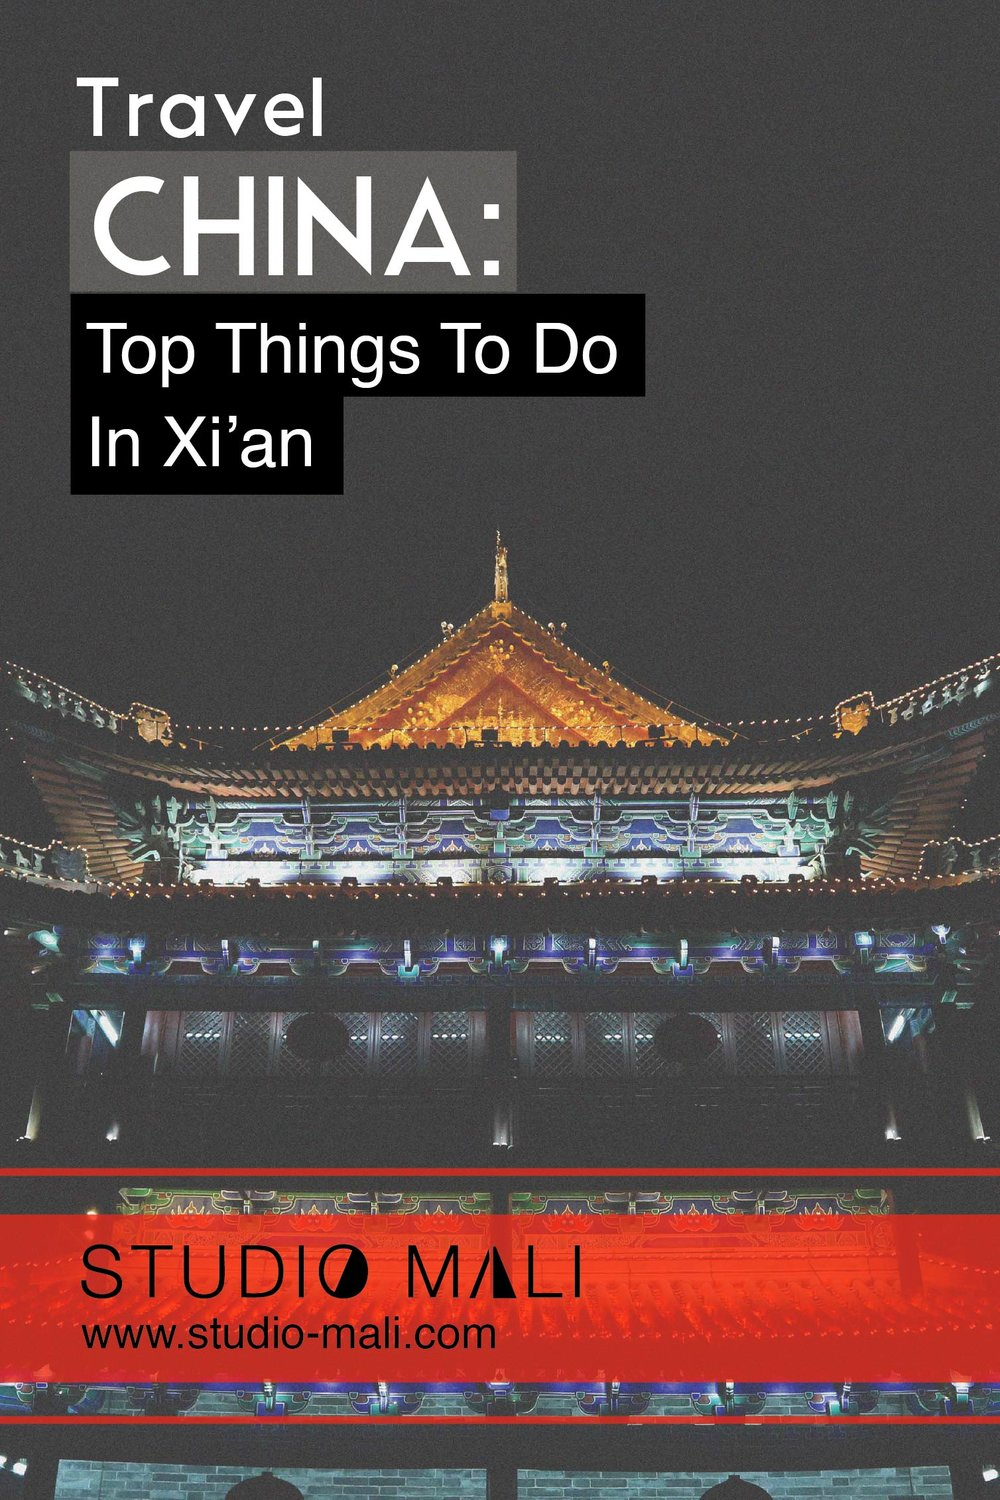 China - Top Things To Do In Xi'an, by Studio Mali.jpg